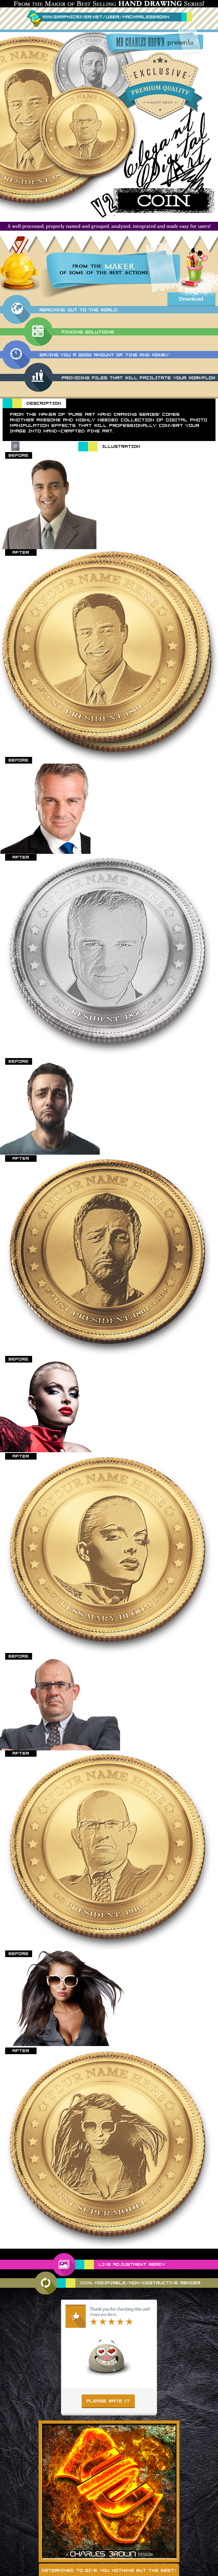 Elegant Digital Art Imagining 2 – Face on Coin - Photo Effects Actions